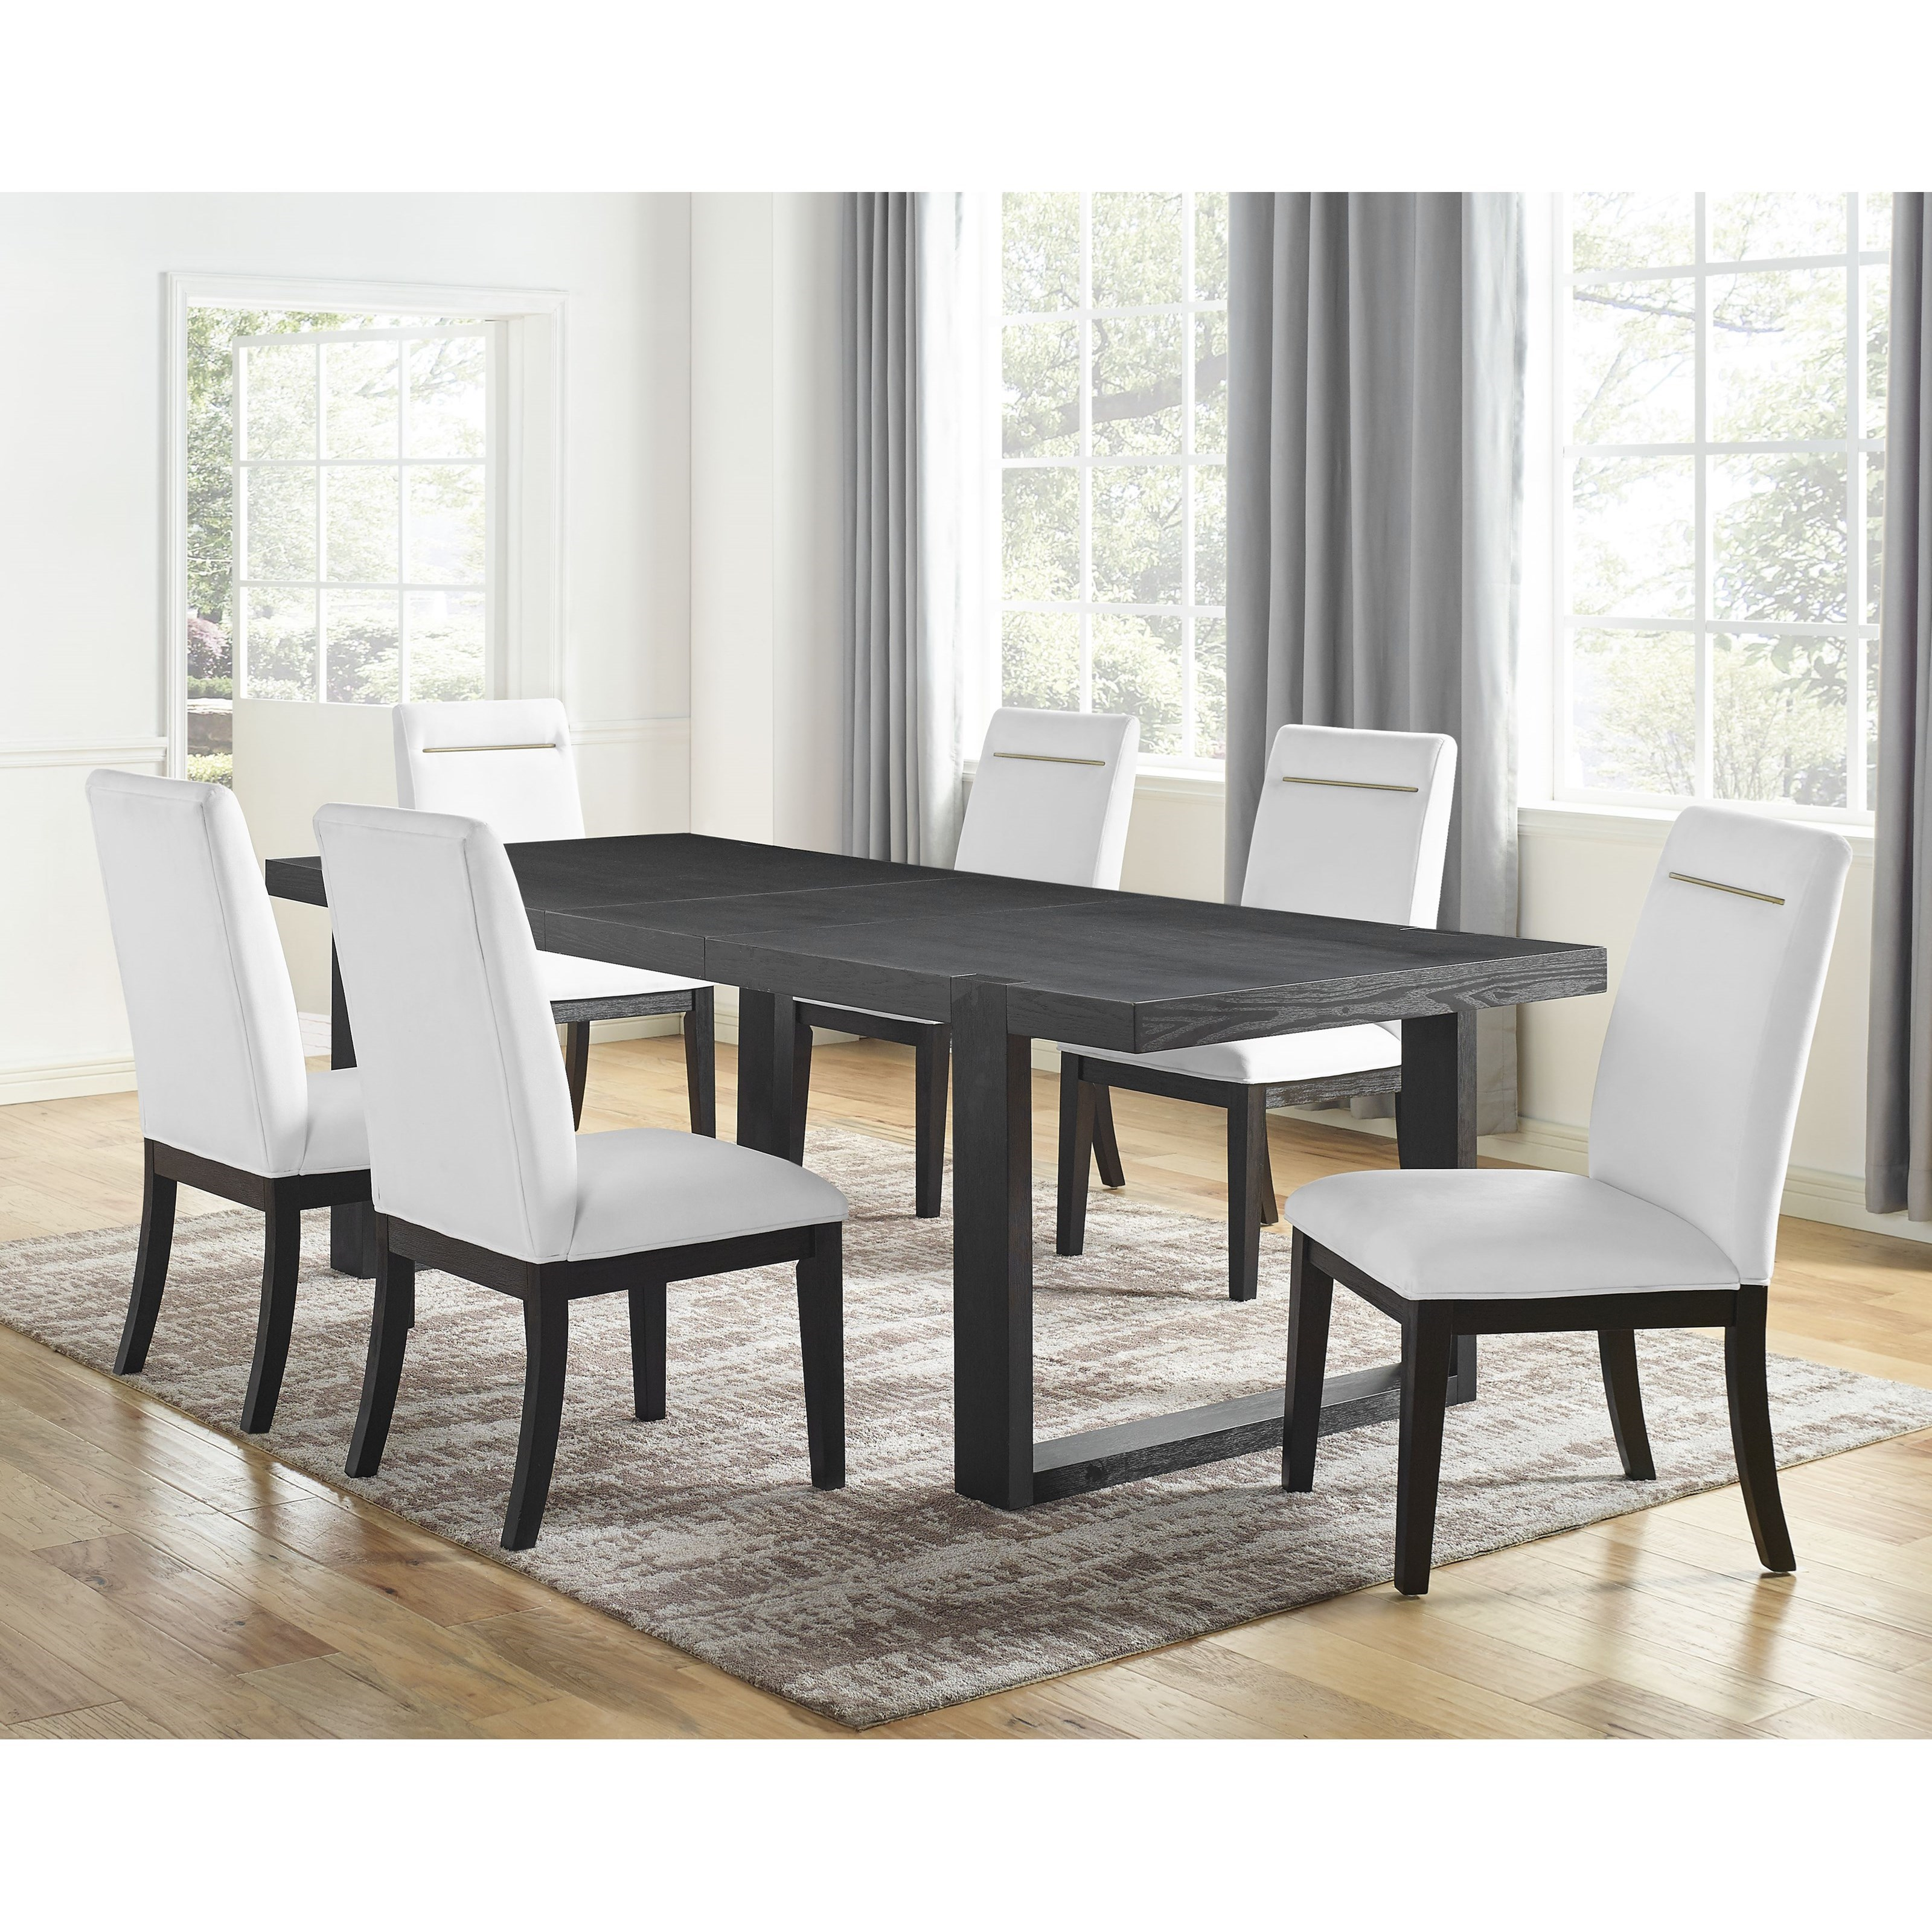 Yves 7-Piece Table and Chair Set by Steve Silver at Northeast Factory Direct